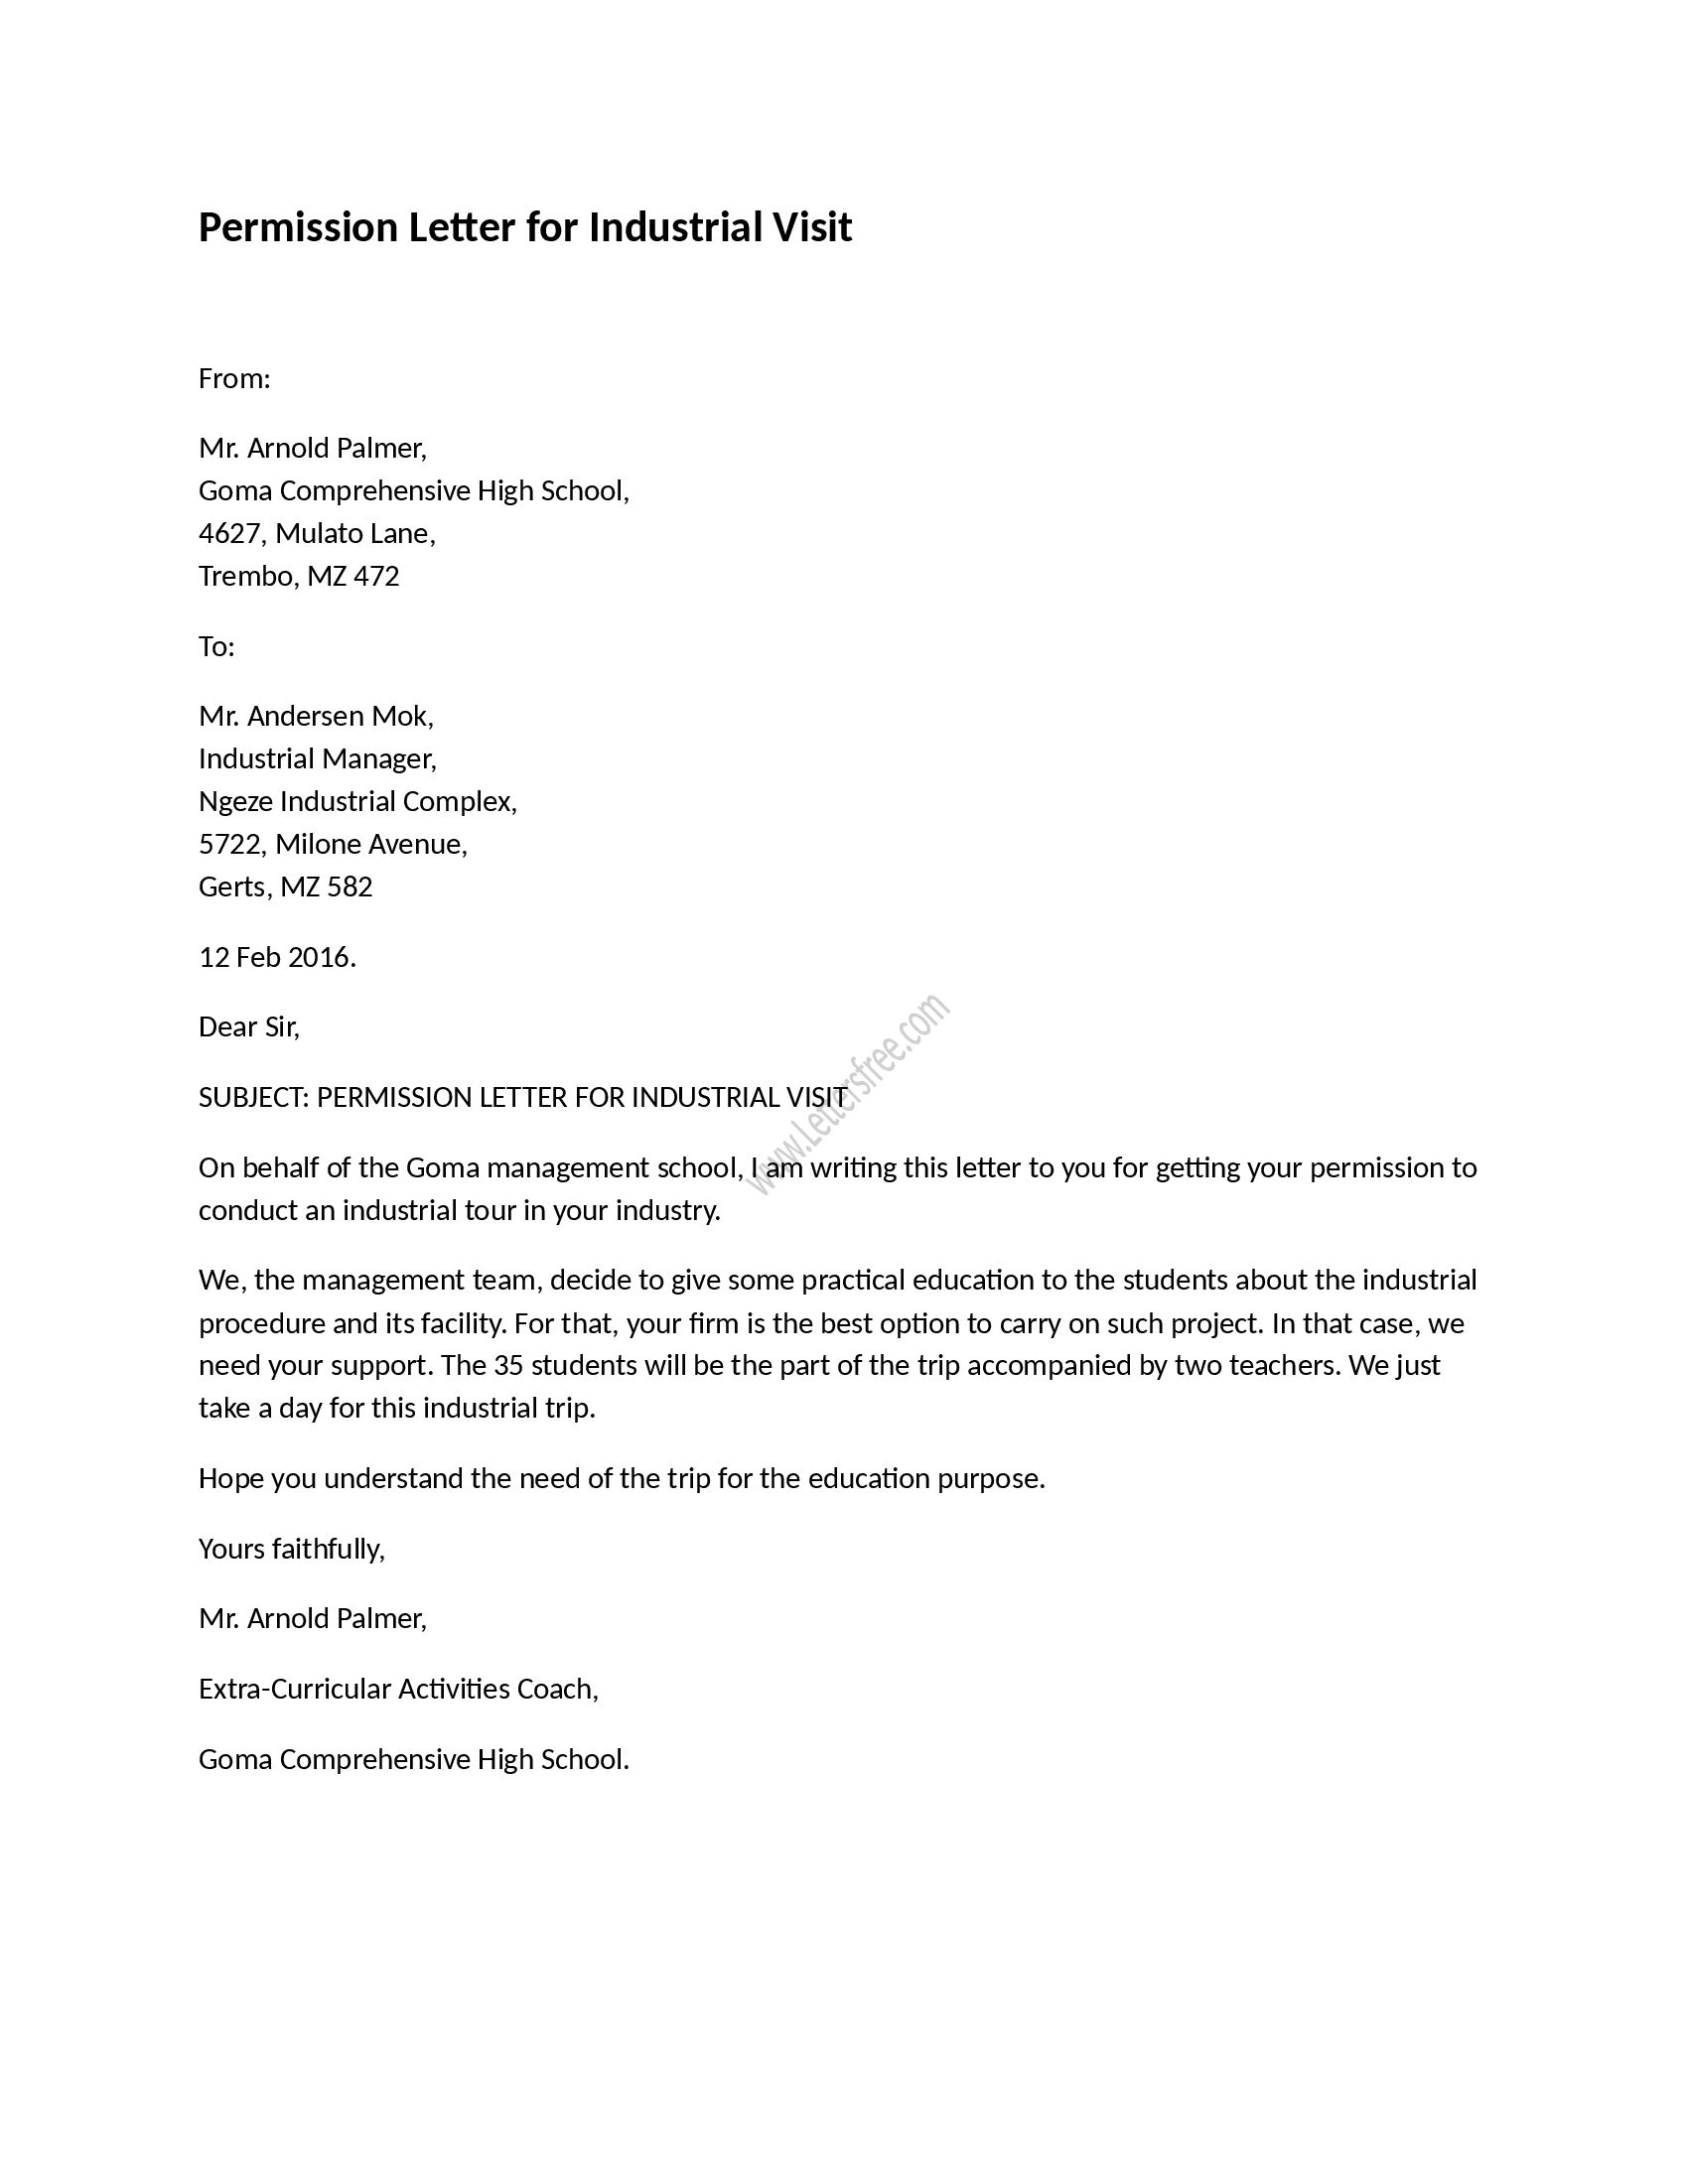 Child Visitation Letter Template - Permission Letter for Industrial Visit Pinterest